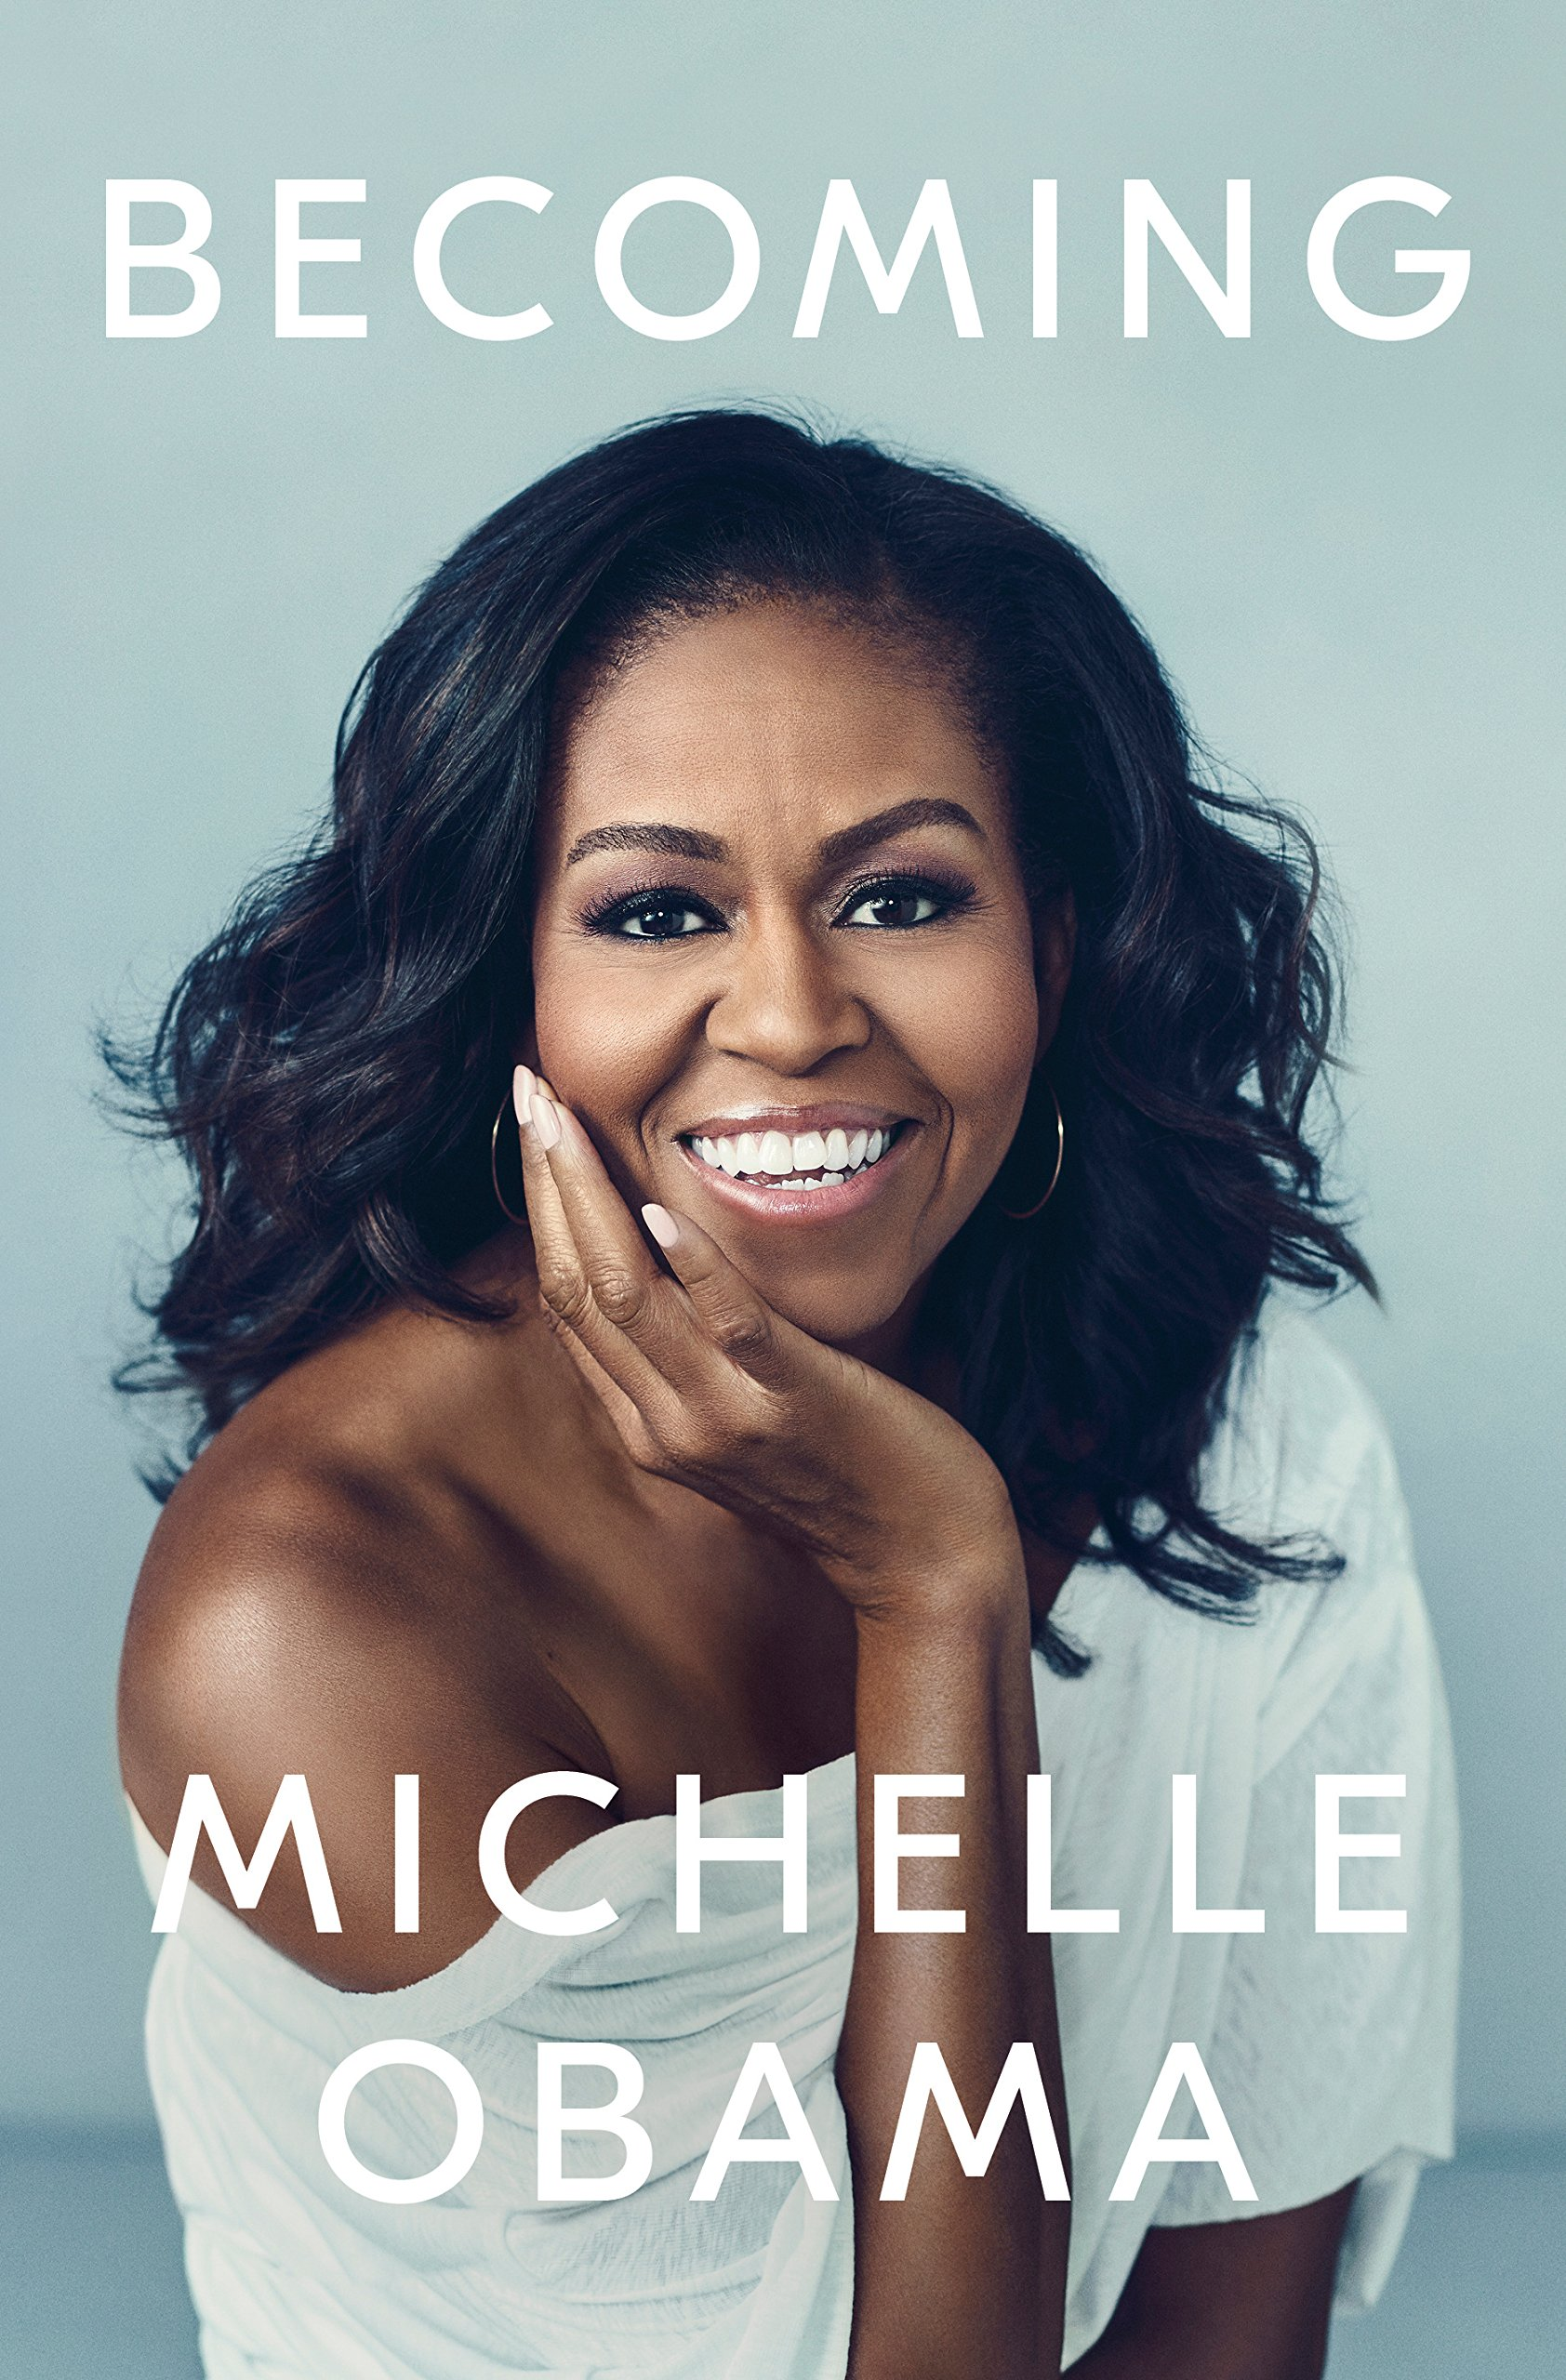 Spell-ometer November 2018 - Becoming by Michelle Obama